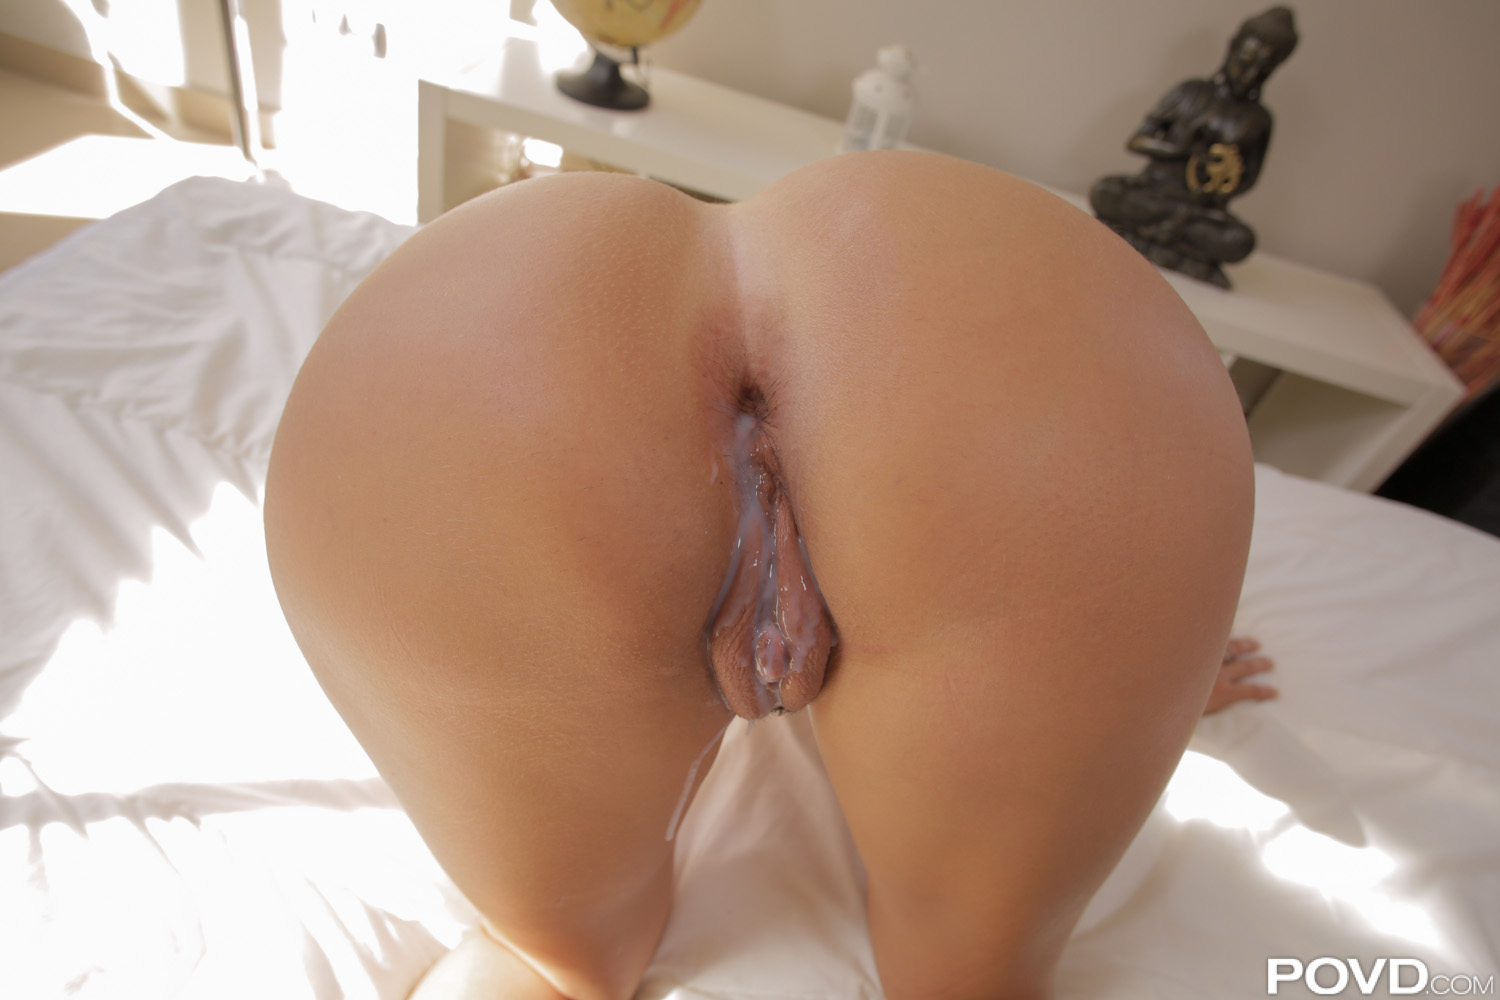 Big Ass Latina Anal Dildo